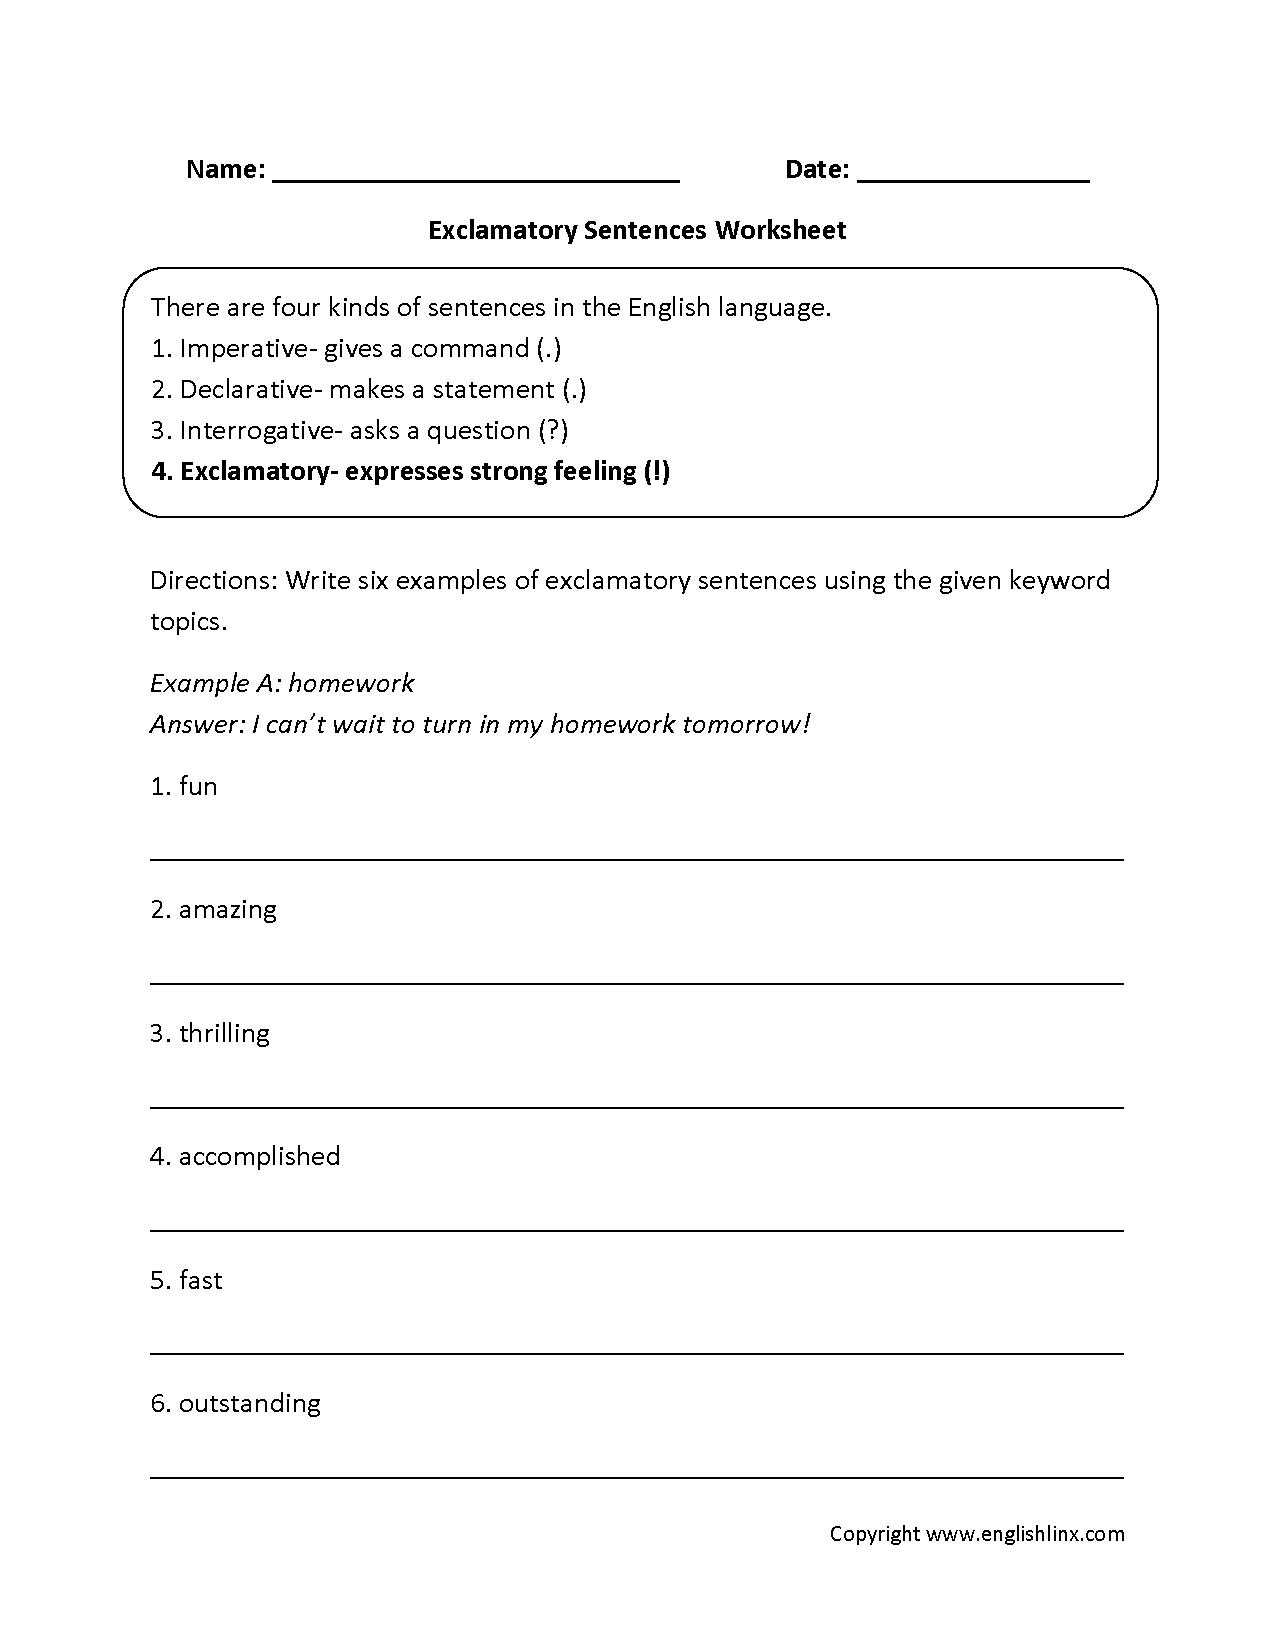 Worksheets Declarative And Interrogative Sentences Worksheets 4th Grade exclamatory types of sentences worksheets education language worksheets